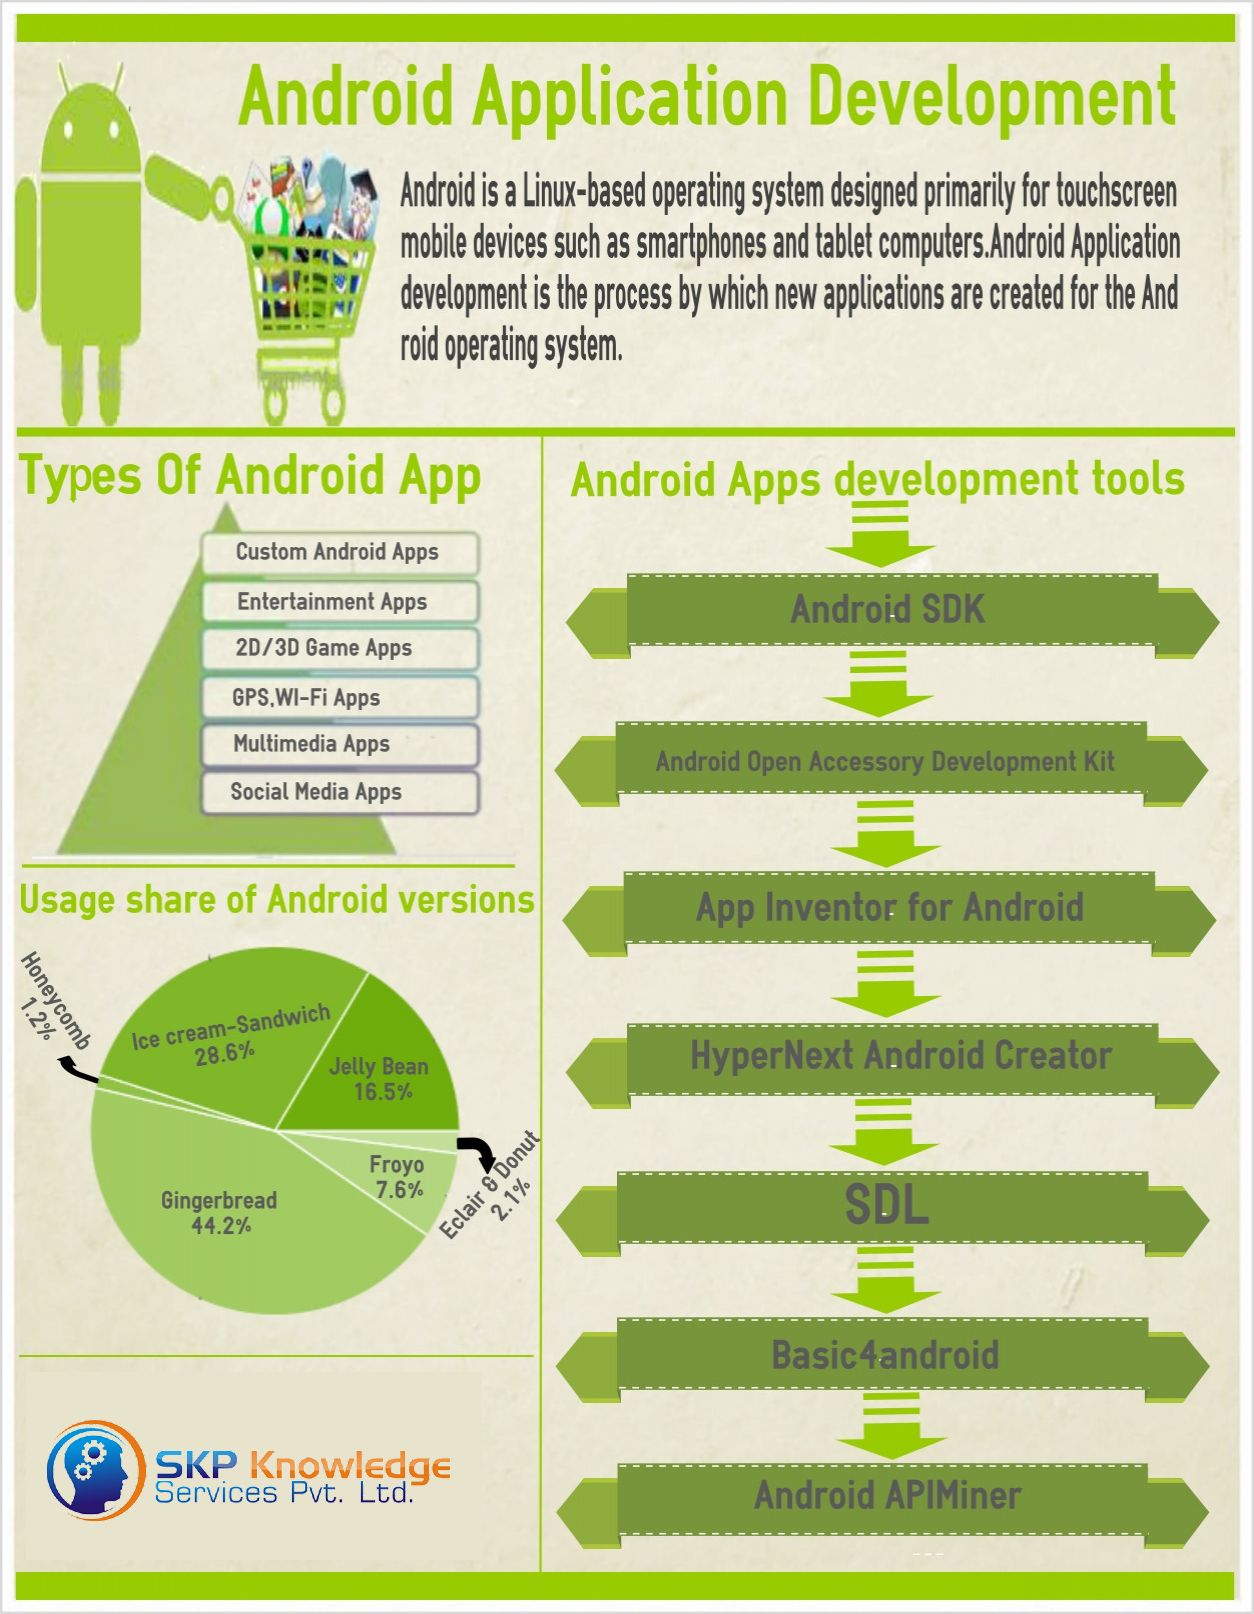 Android Application Development Services SKP Knowledge